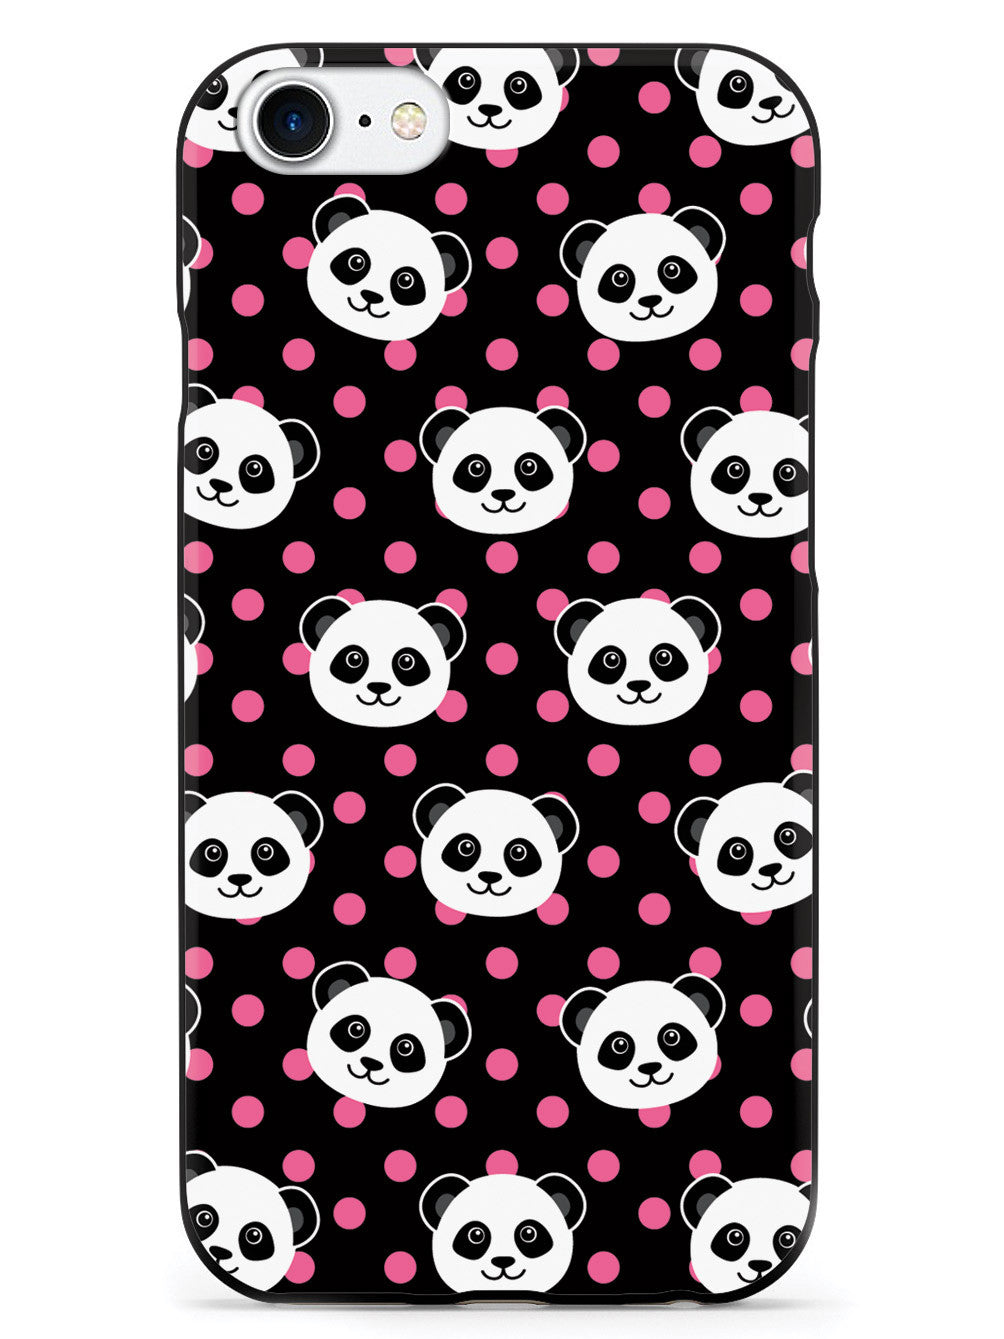 Cute Panda Pattern - Pink Polka Dots - Black Case